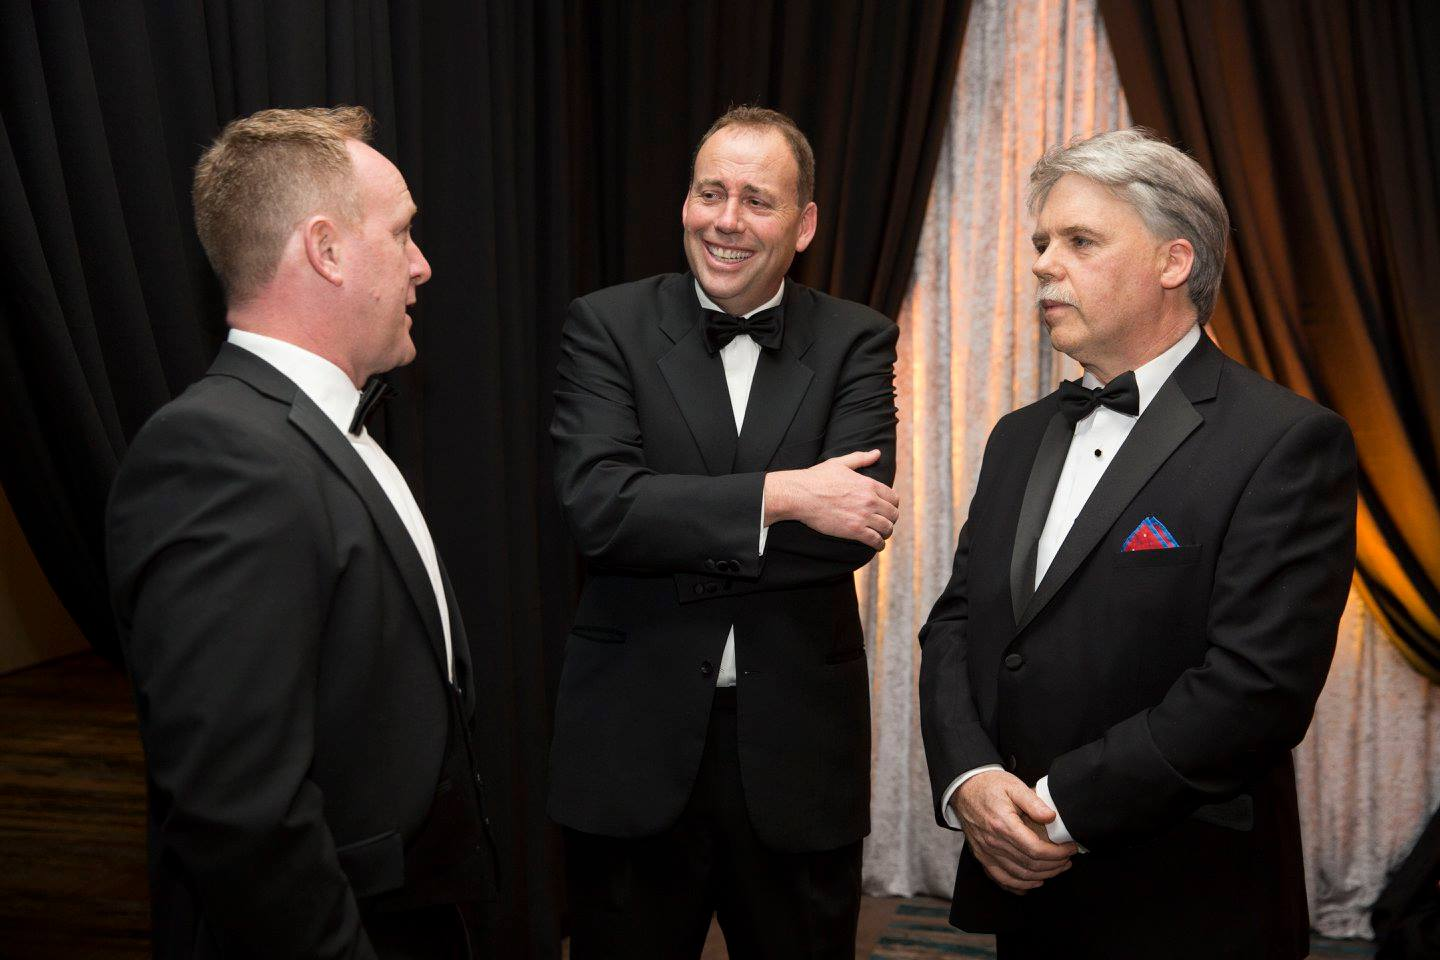 CCMA Joe and two others